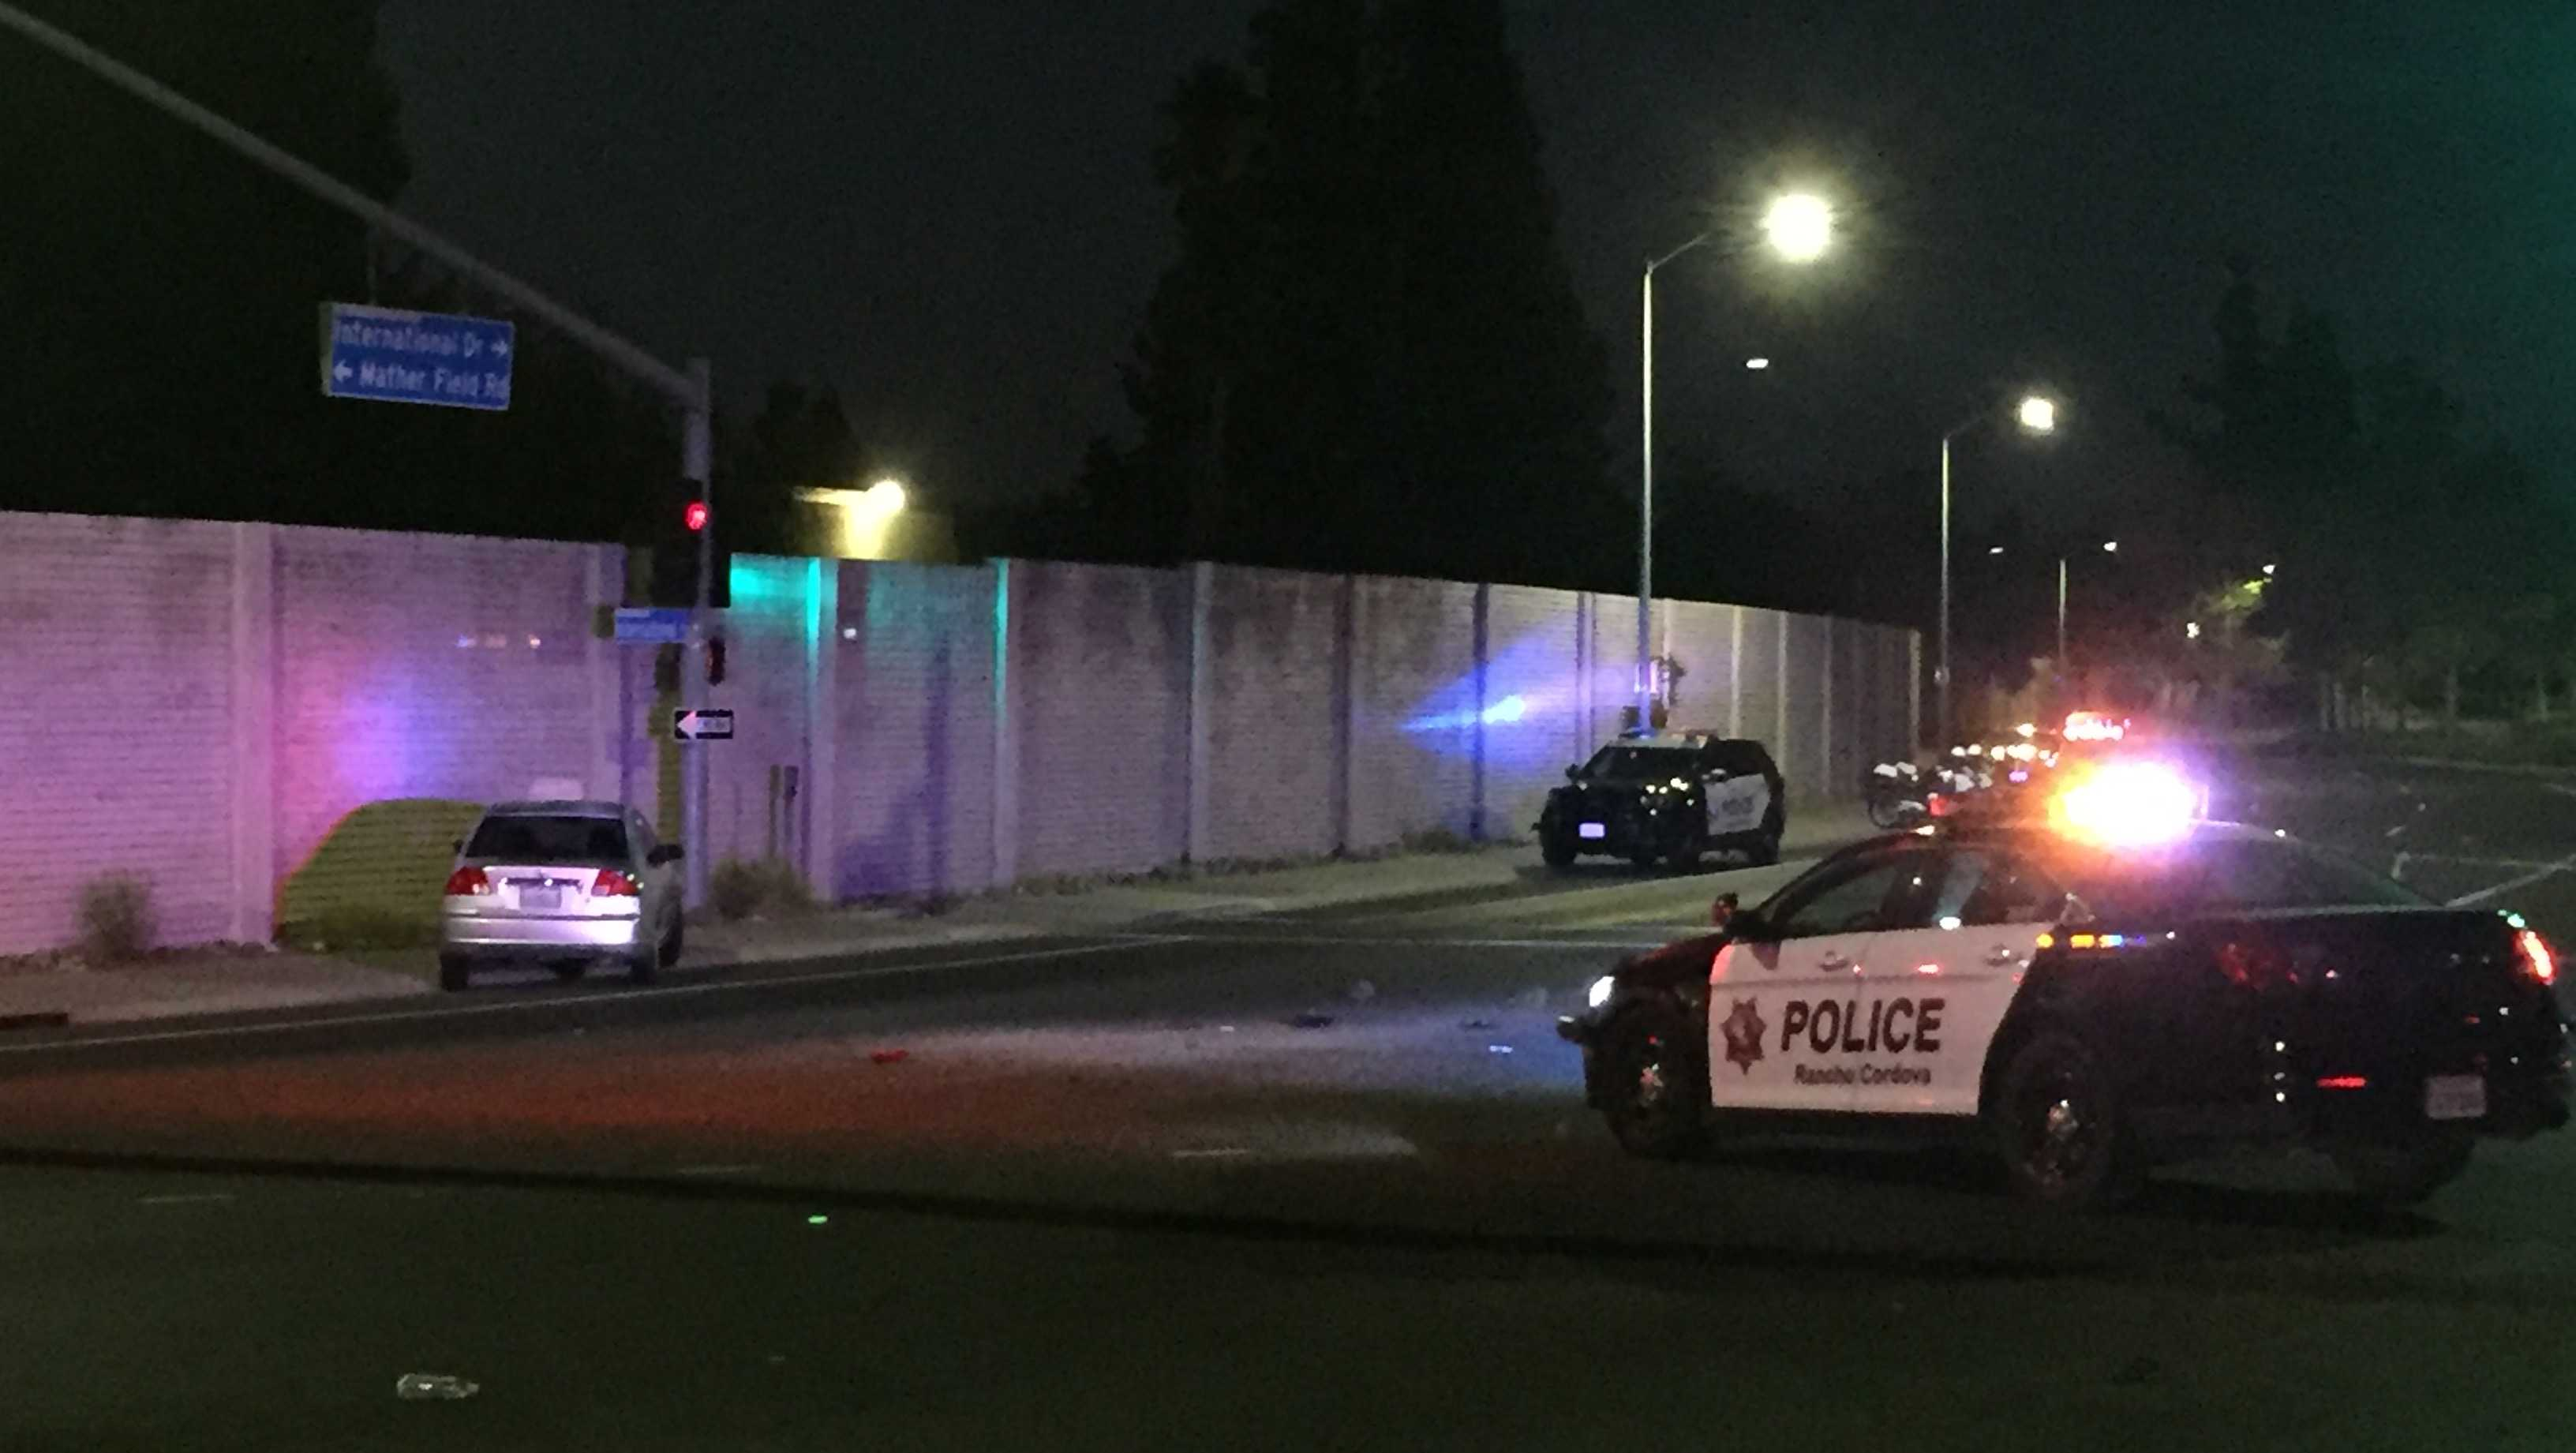 Officers investigate after a man was hit by car and killed Friday, Oct. 6, 2017, in Rancho Cordova, police said.